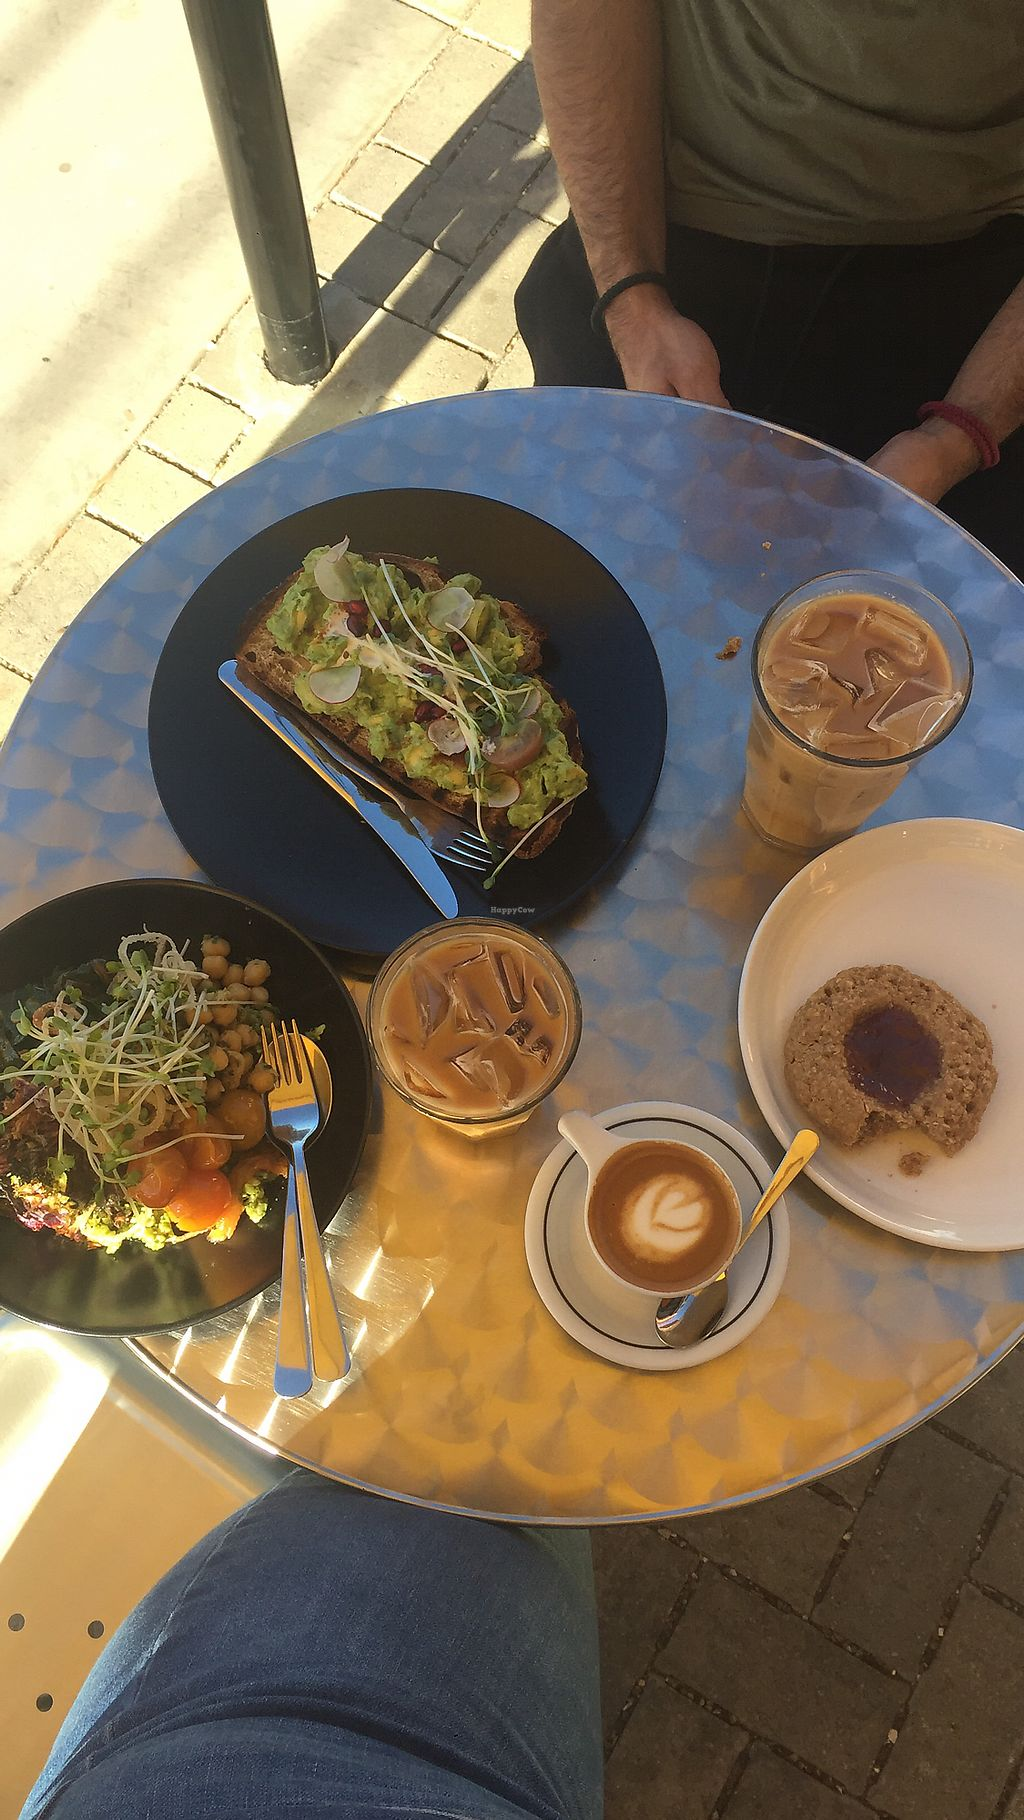 """Photo of Handlebar Coffee Roaster  by <a href=""""/members/profile/AlexandraTrout"""">AlexandraTrout</a> <br/>Fully vegan spread! We got every vegan thing they had and it was all exceptional!  <br/> January 31, 2018  - <a href='/contact/abuse/image/79081/353242'>Report</a>"""